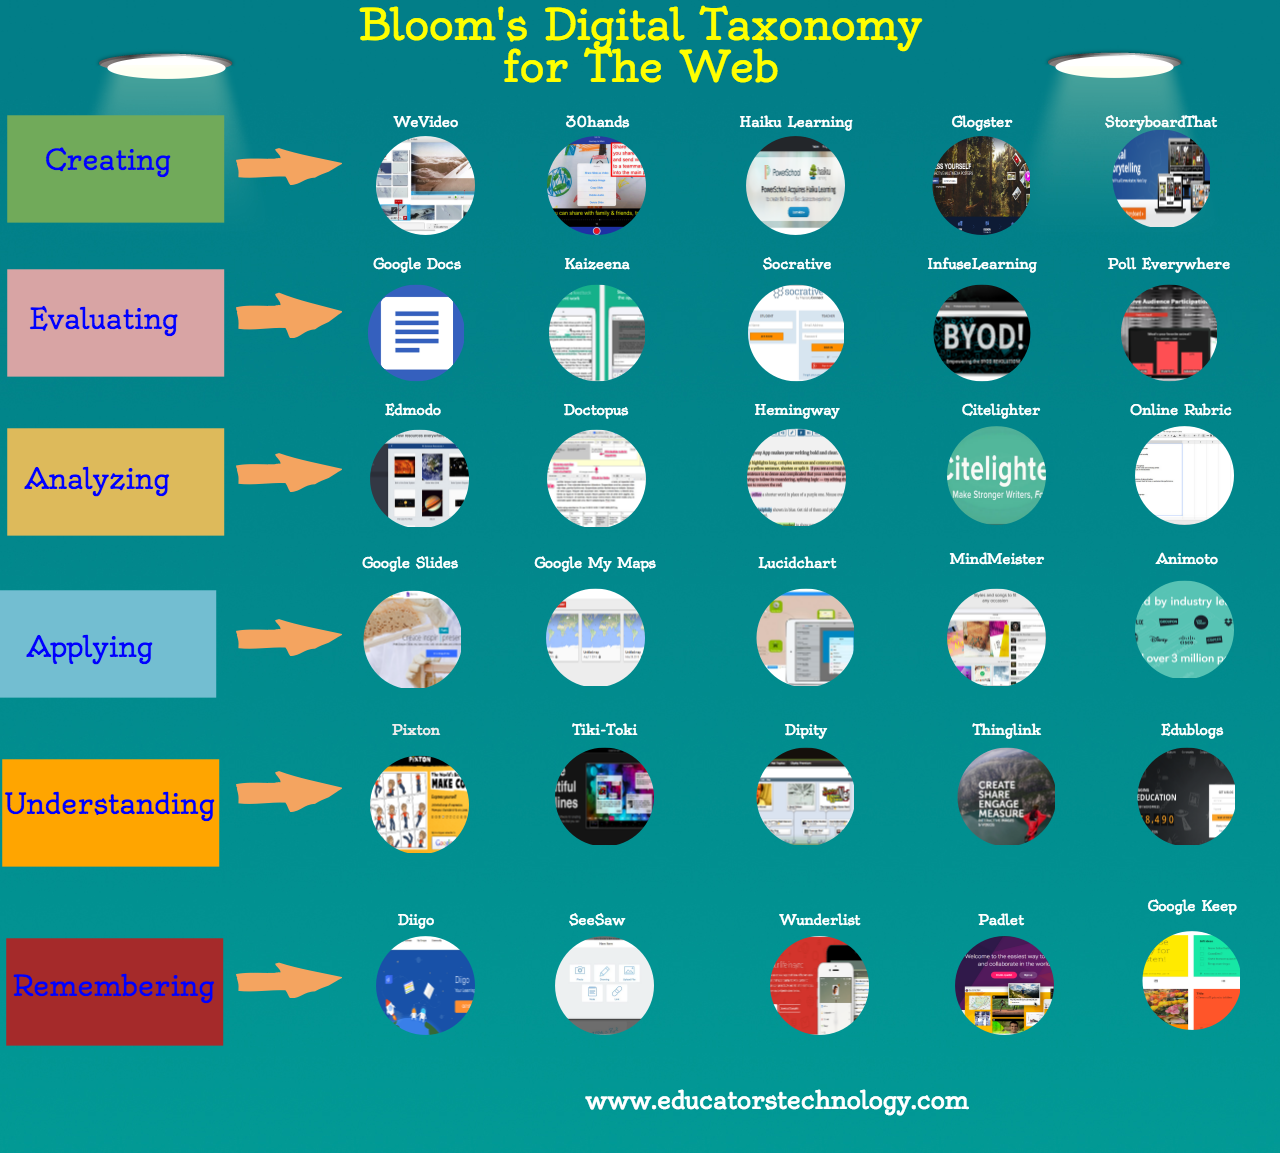 educatorstechnology.com - Bloom's Taxonomy for The Web (Visual)